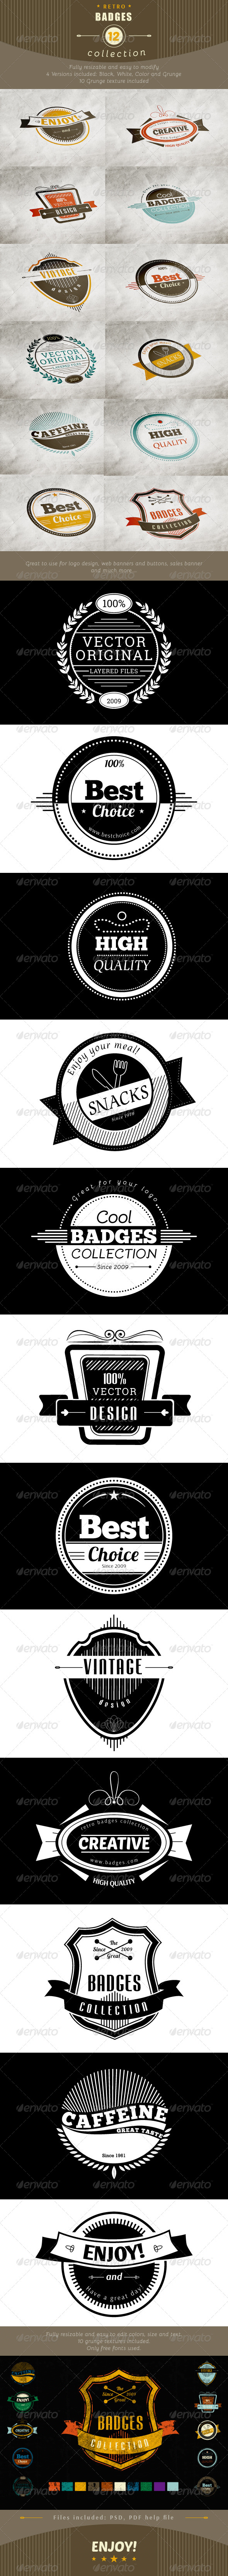 12 Retro and Vintage Badges - Badges & Stickers Web Elements